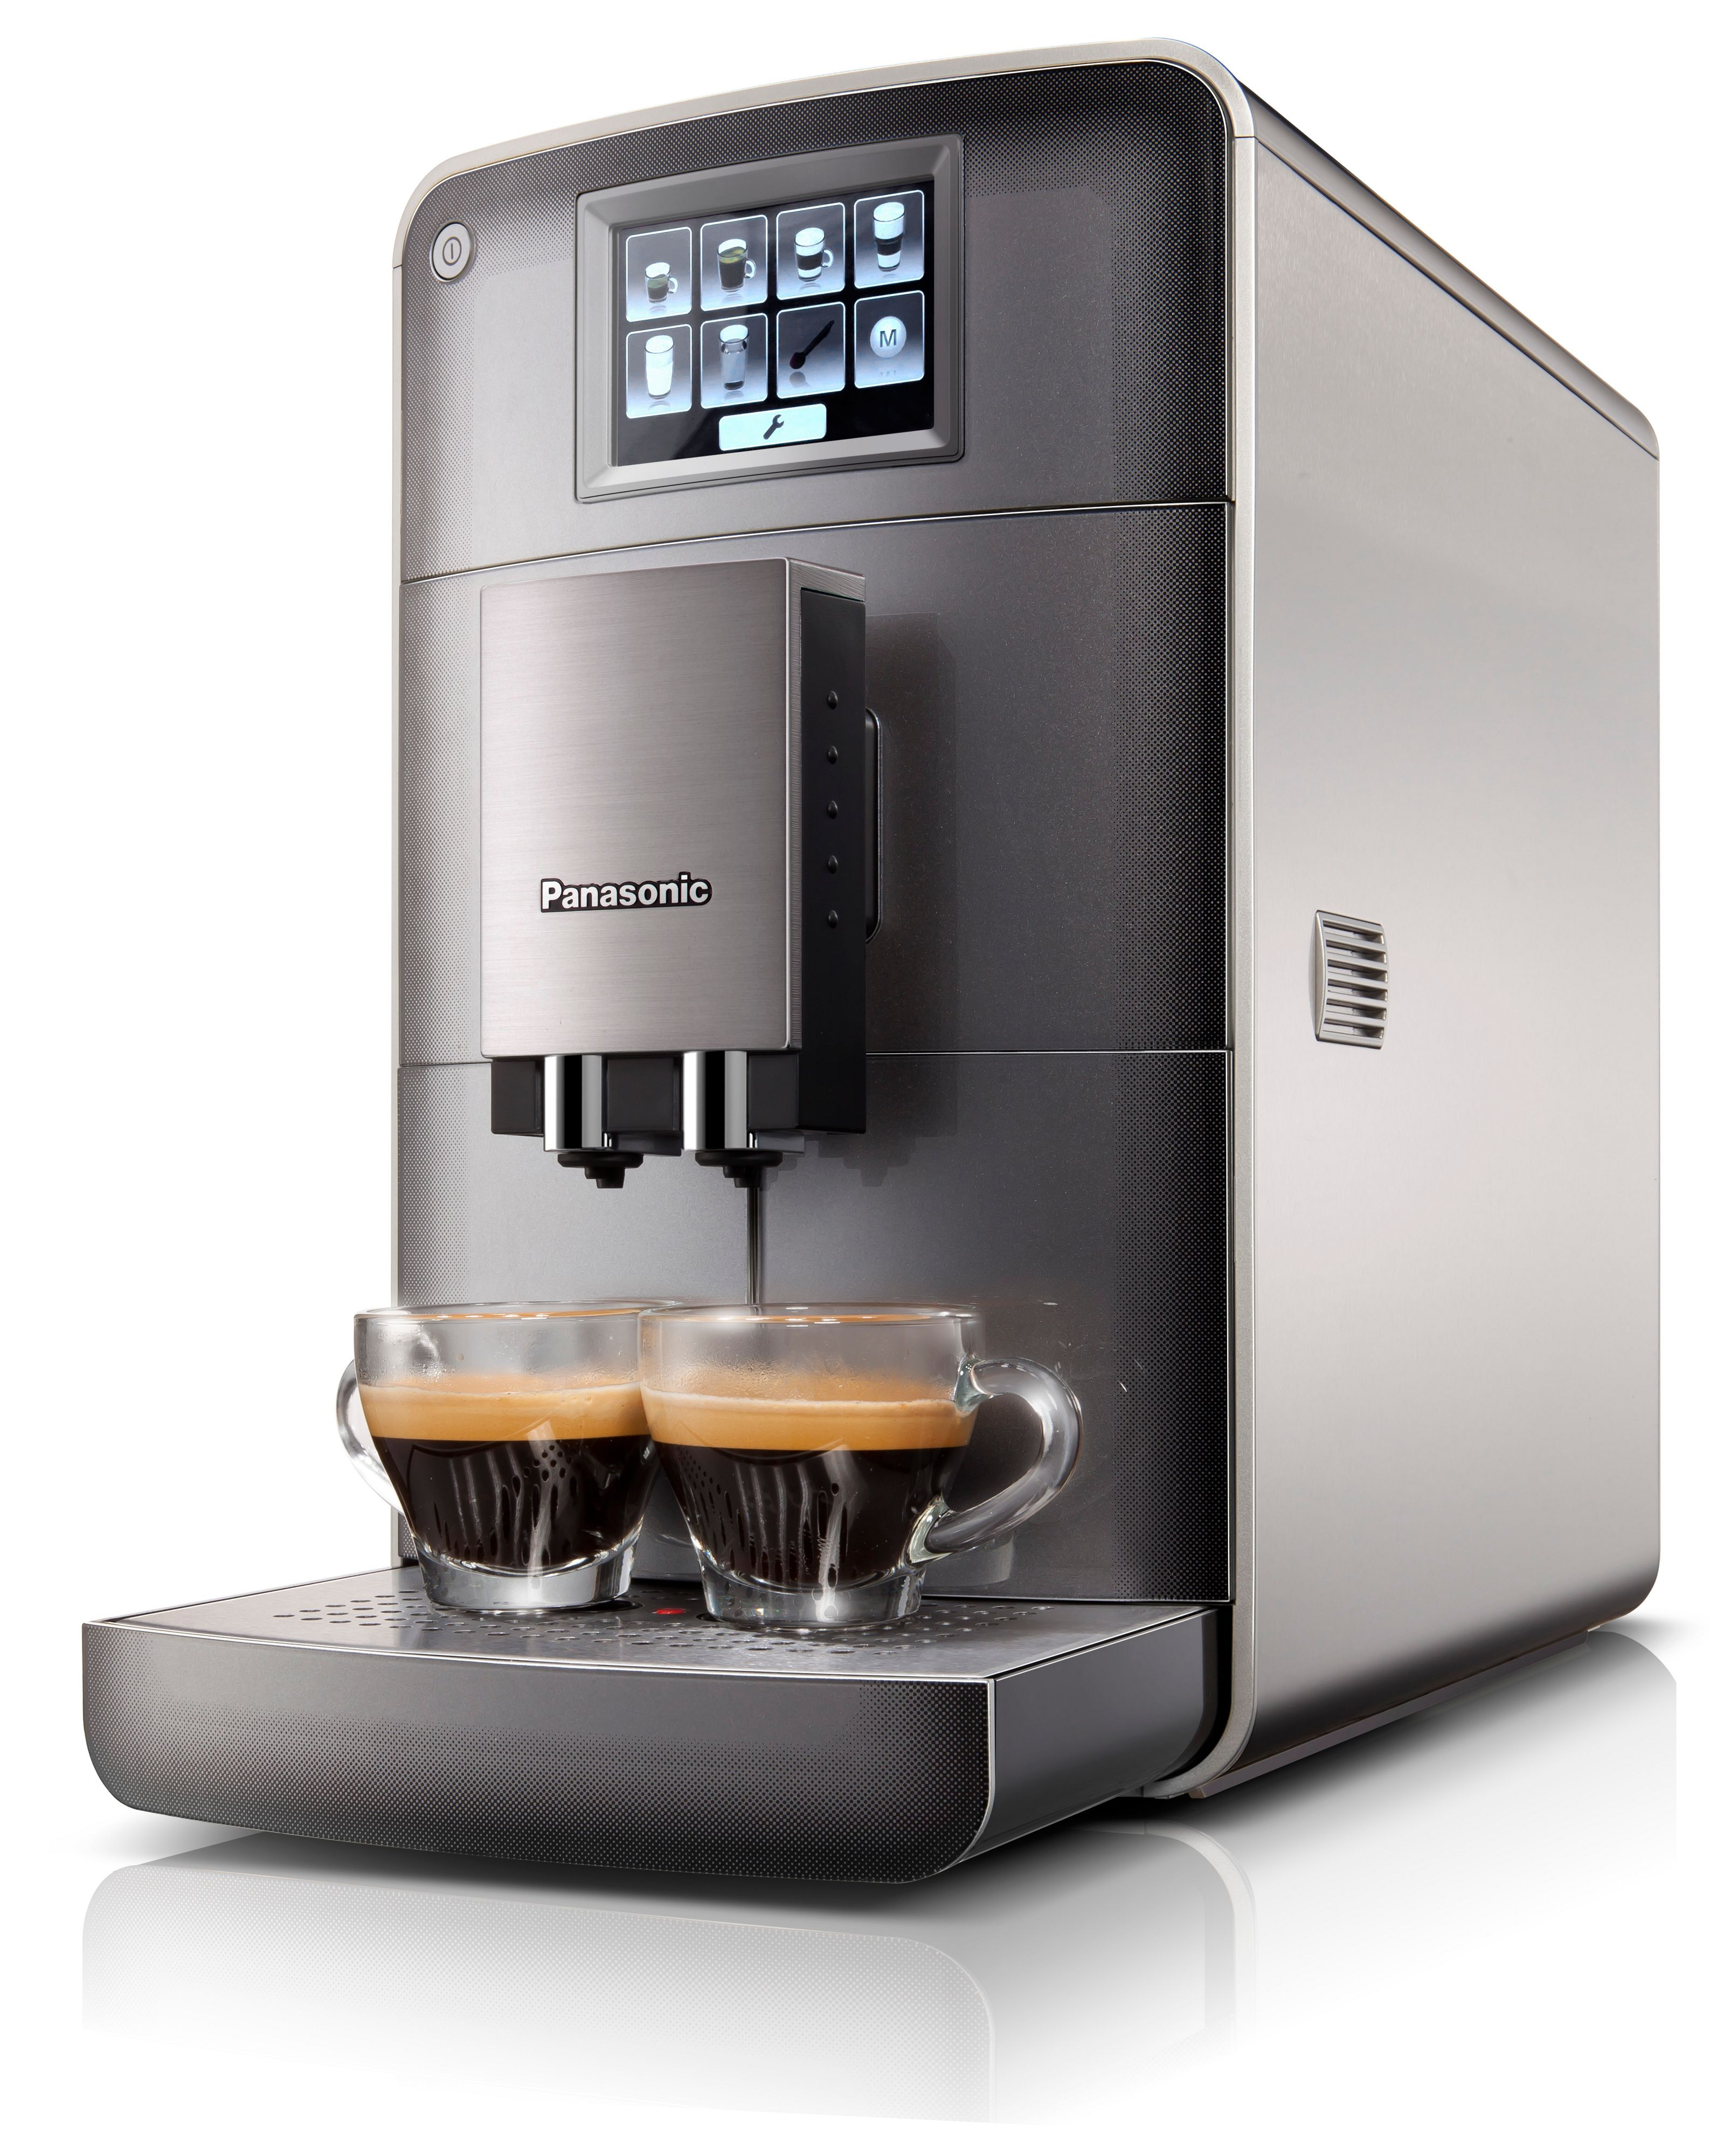 Panasonic slim Bean to Cup coffee machine